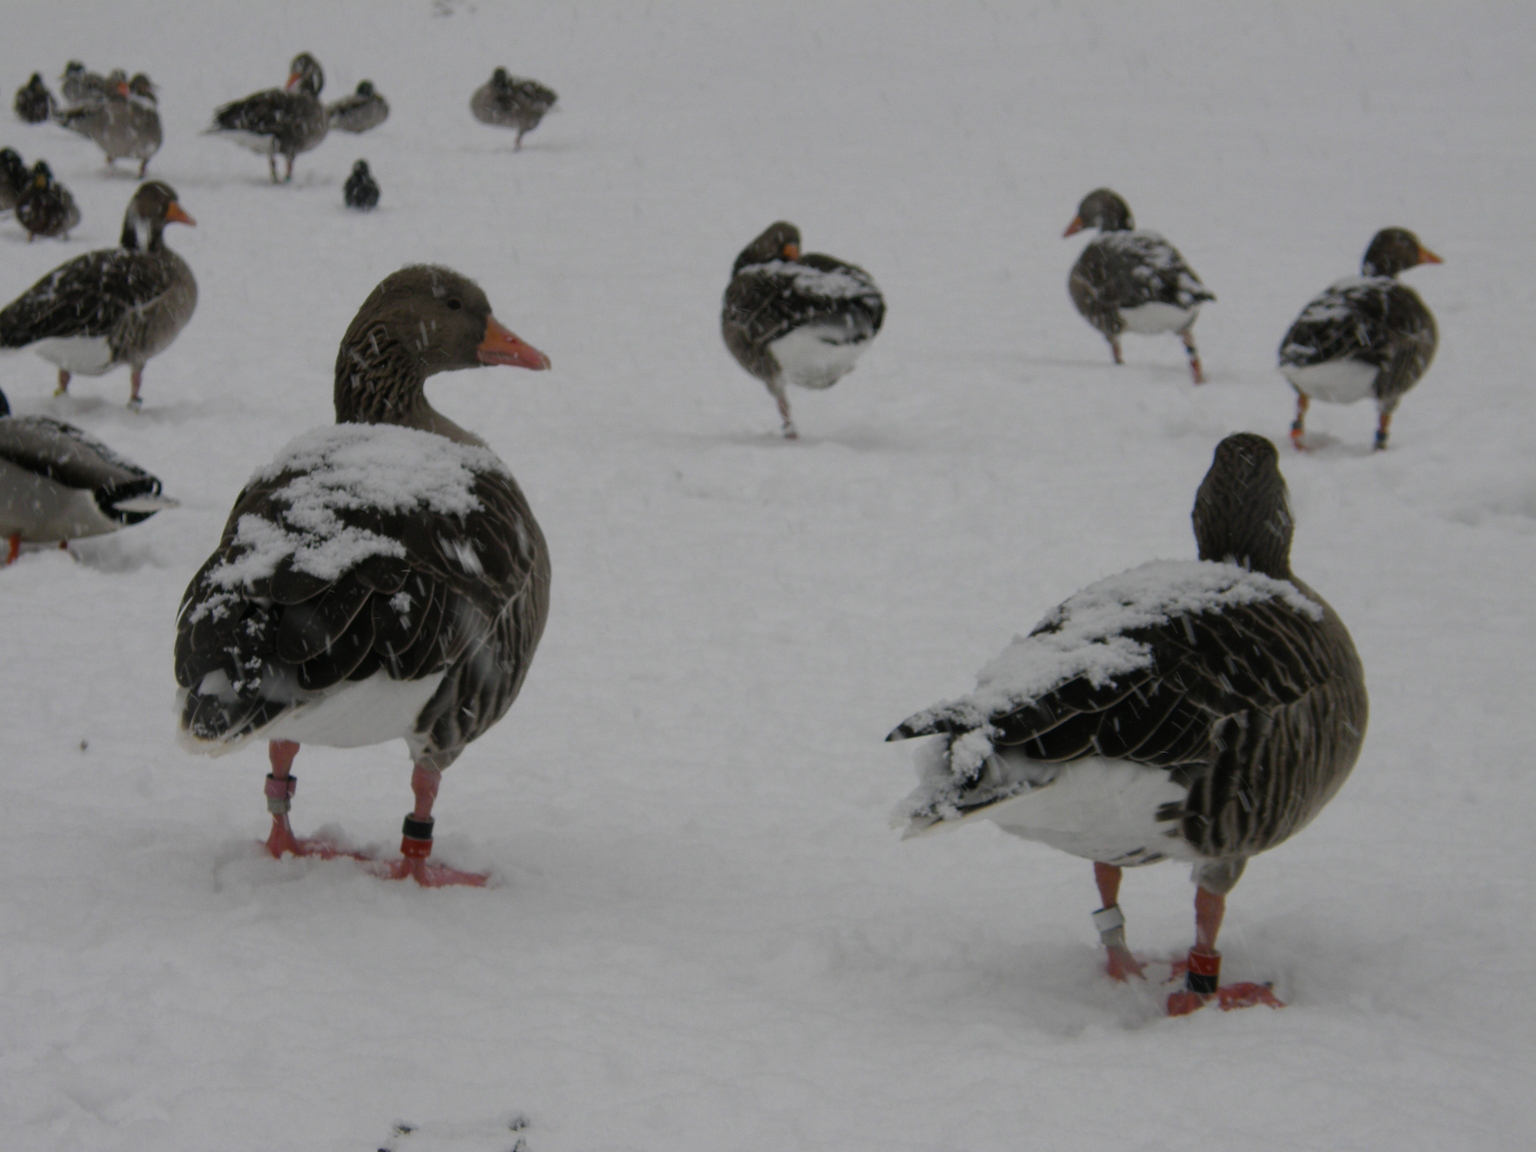 A new study has revealed that geese reduce their heart rate and body temperature in order to endure freezing cold weather.